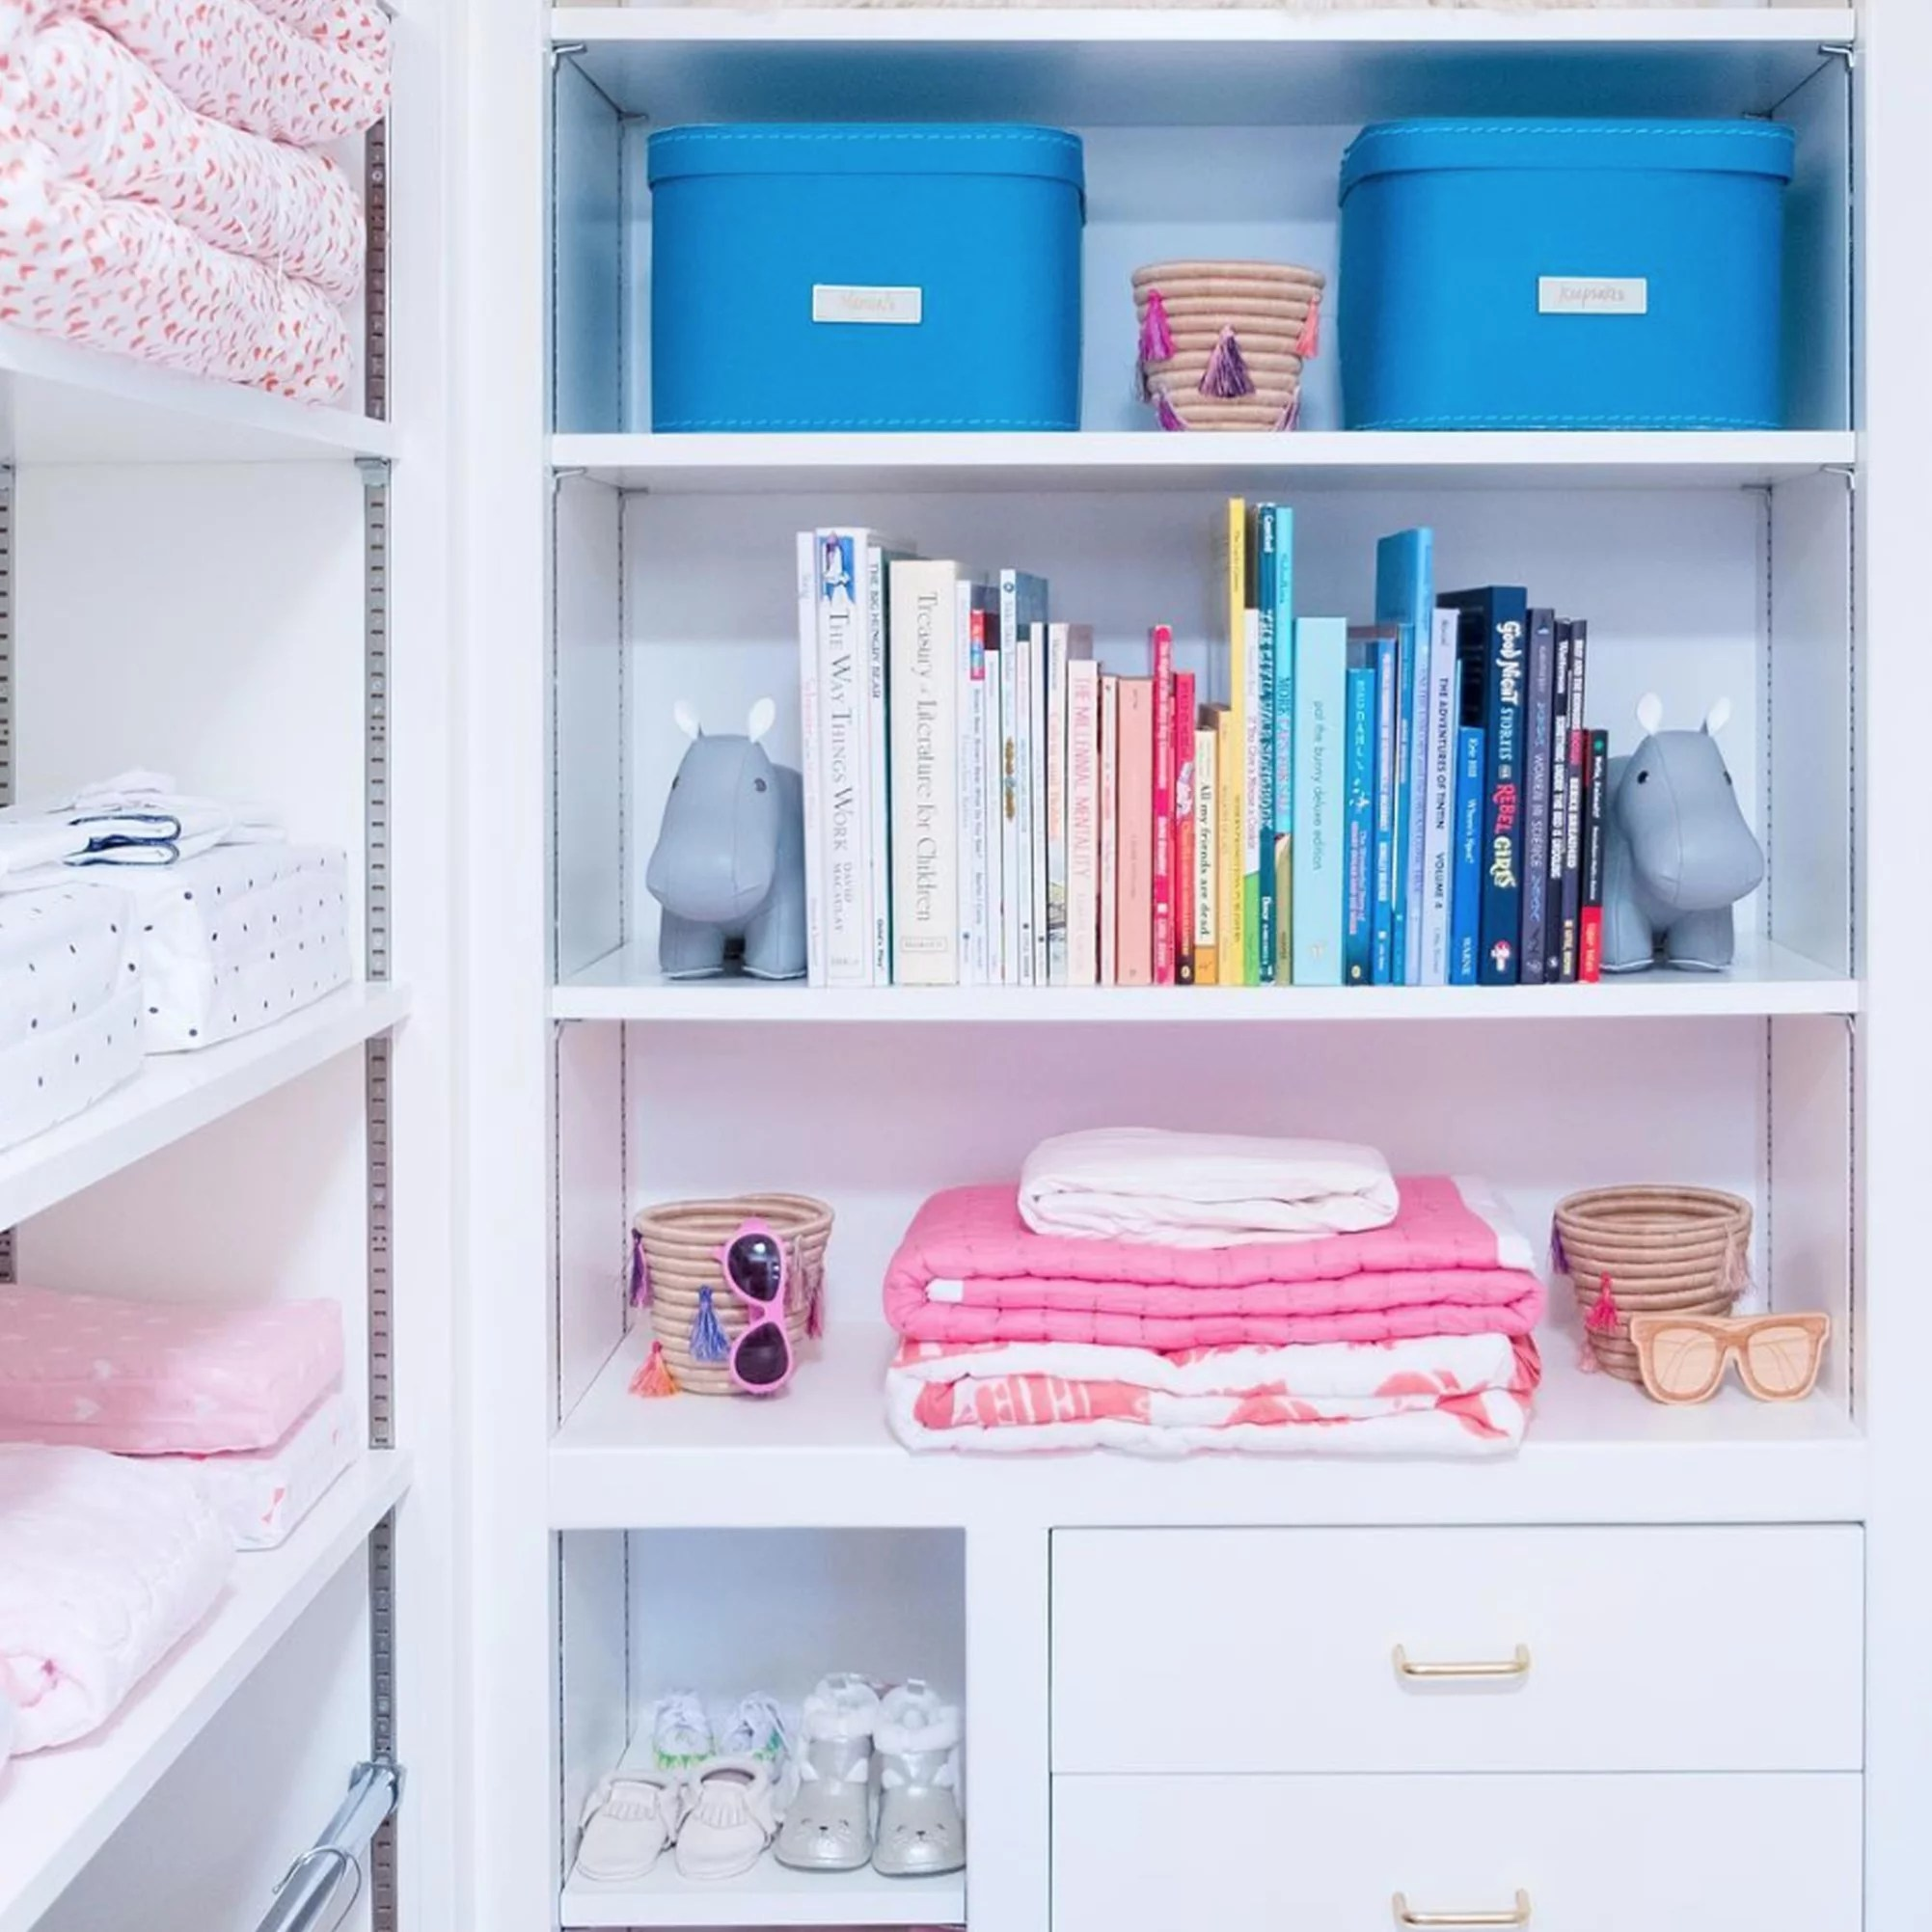 Storage Solutions The Home Edit Storage Solutions For Organizing Kid Stuff